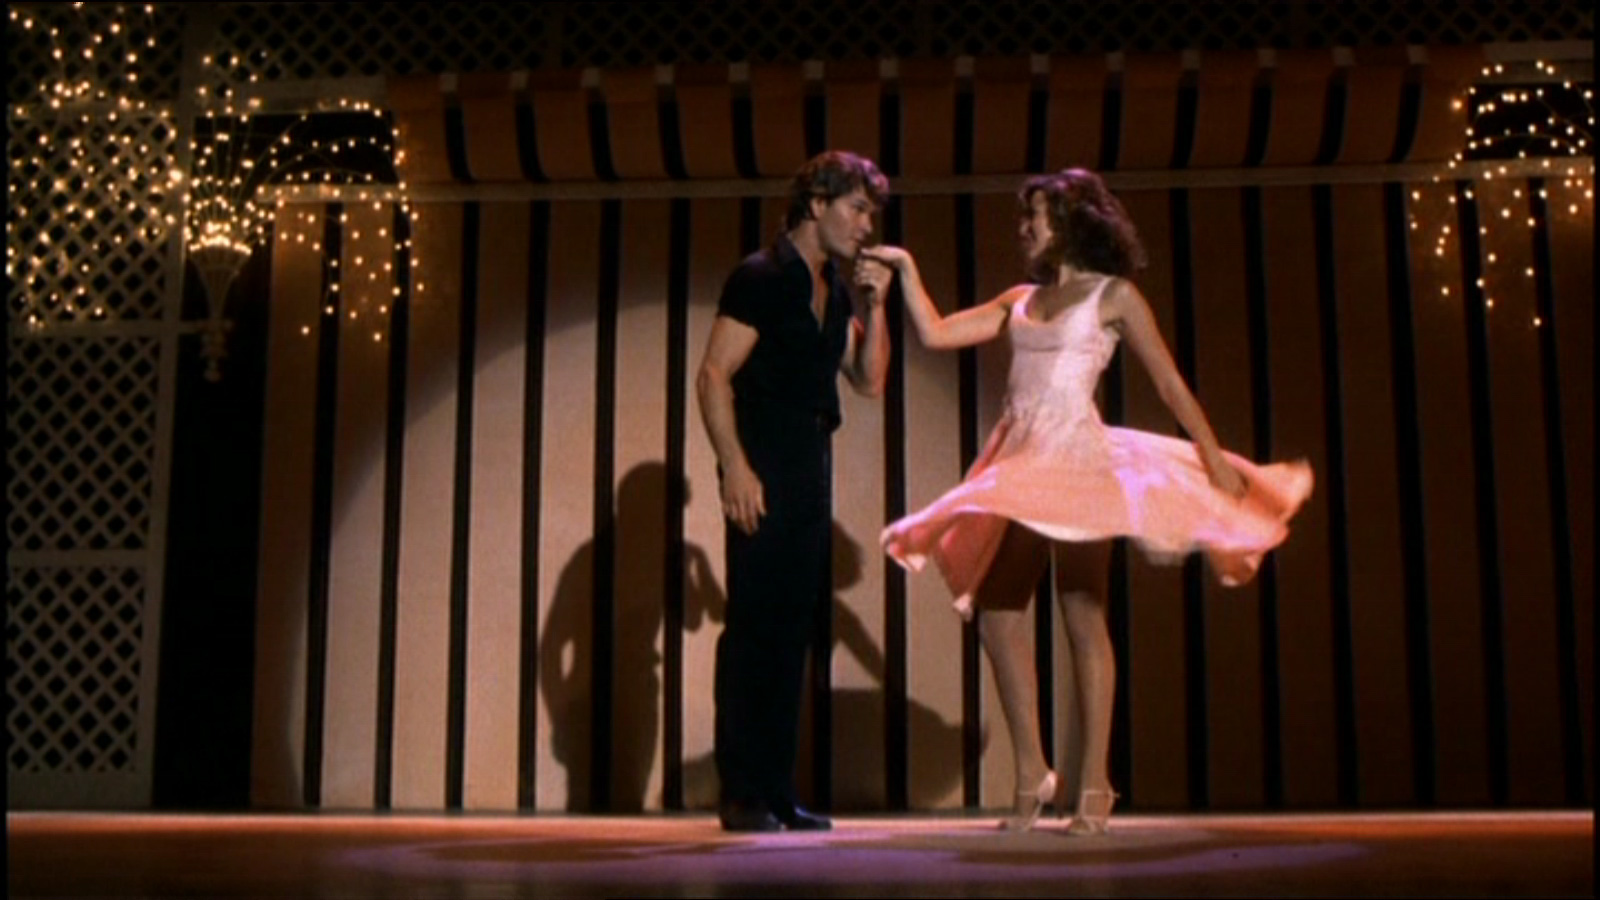 Risultati immagini per dance movie dirty dancing